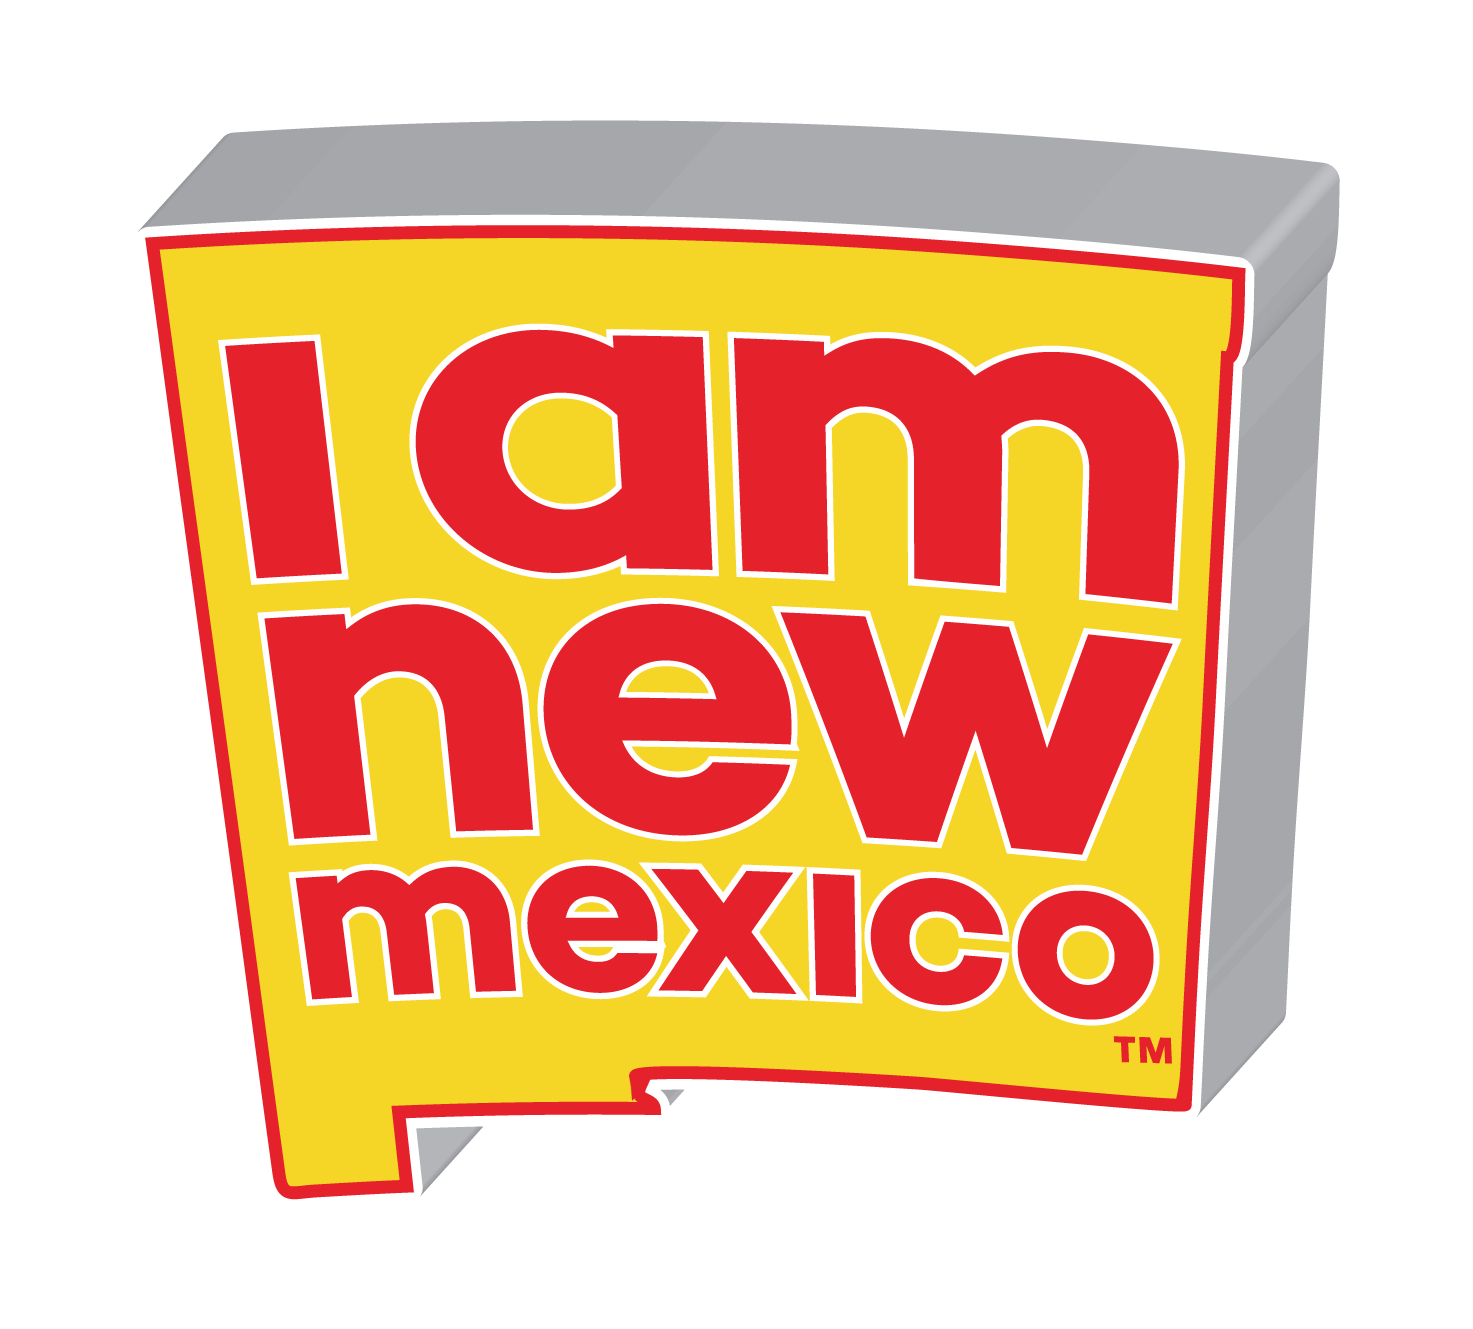 I am New Mexico